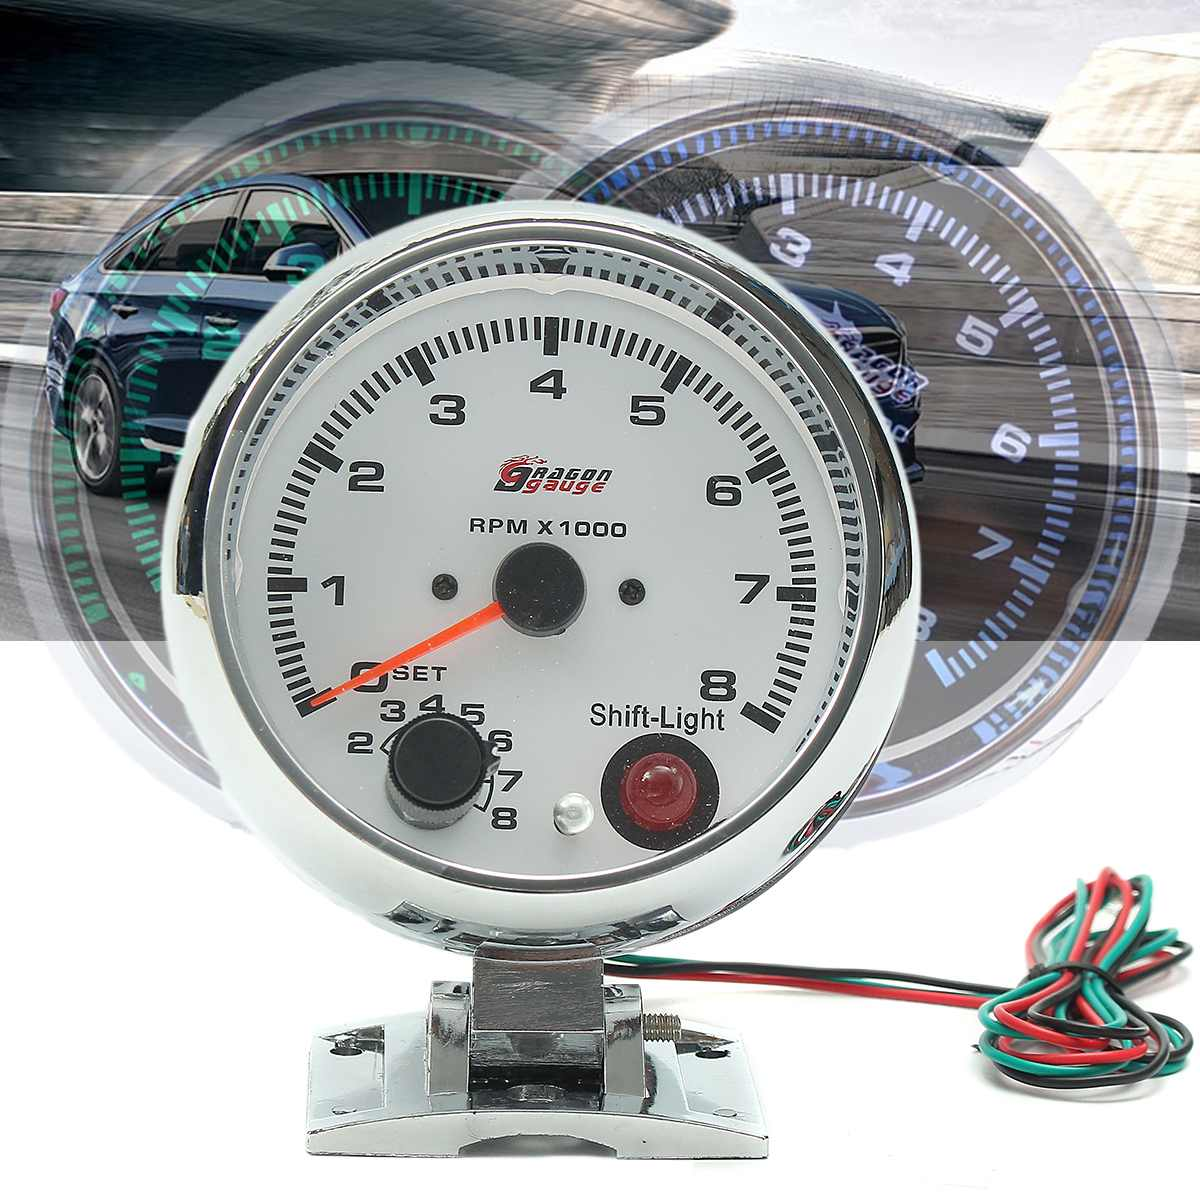 Gauges Auto Replacement Parts Straightforward 0~8000rpm 7 Colors Led Backlight Tachometer Gauge Whiteworks On 4 6 8 Cylinder Engines Universal Fits 12v Petrol Vehicle